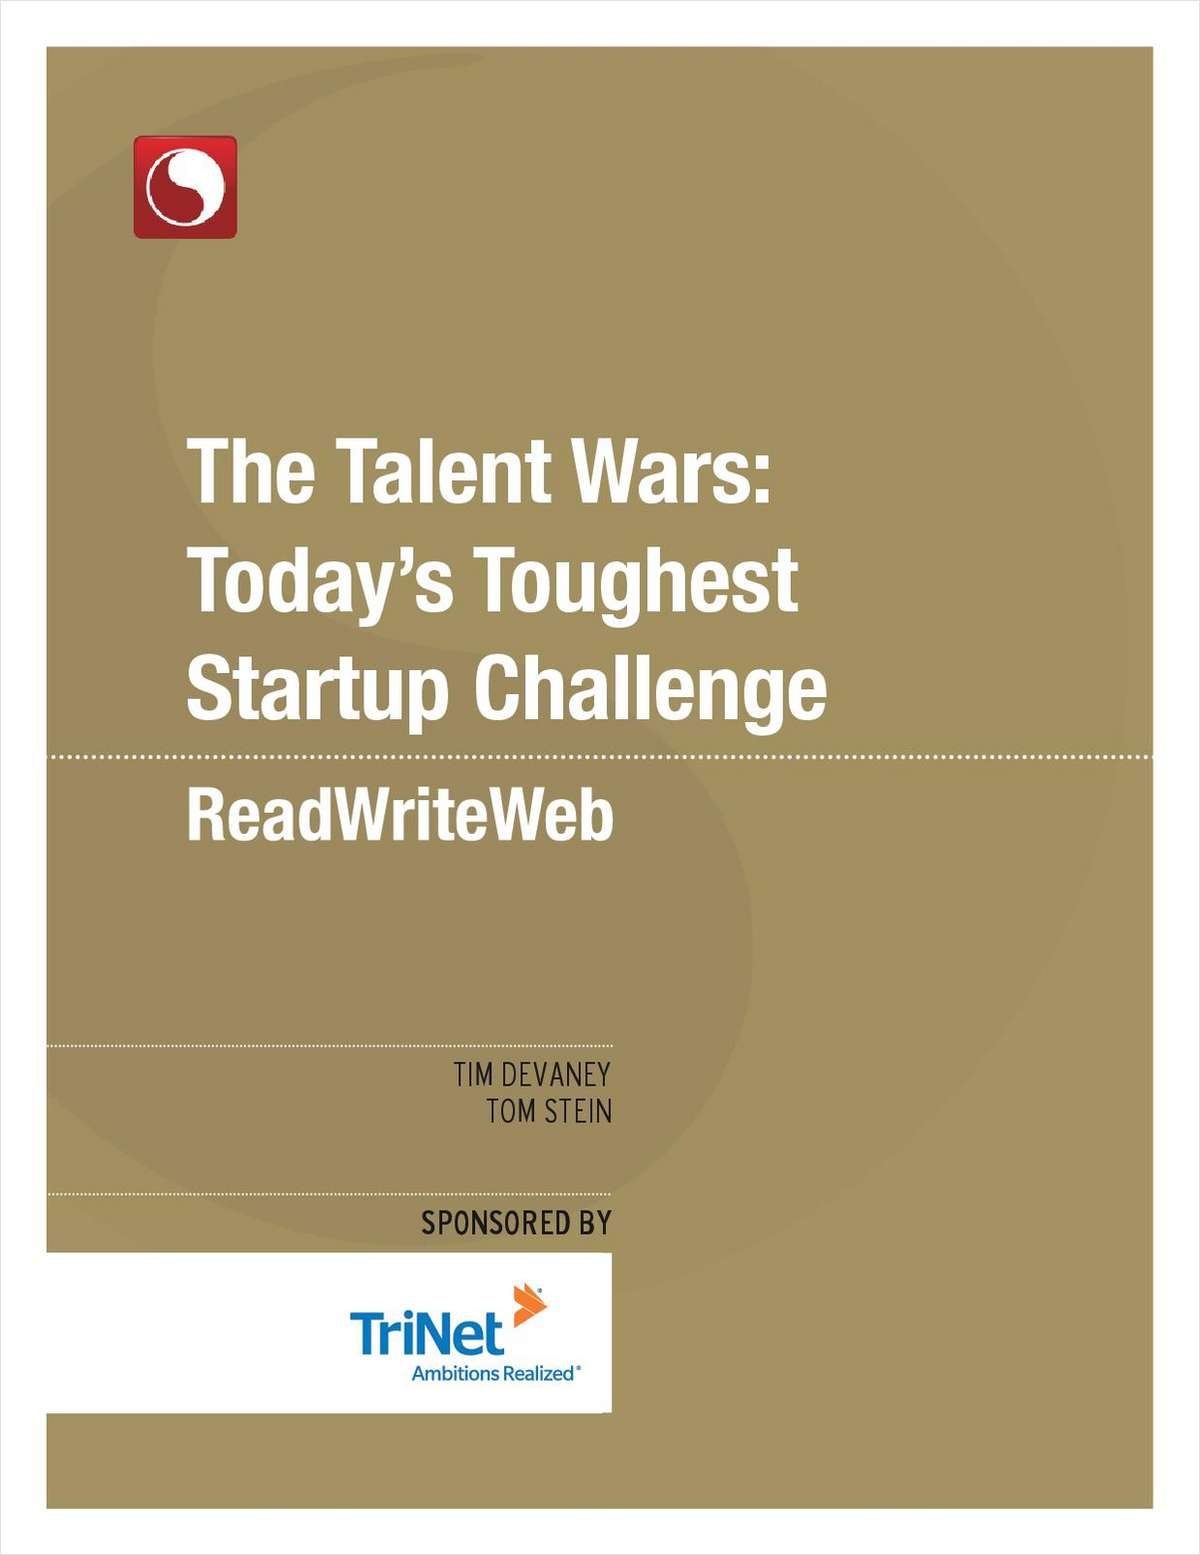 The Talent Wars: Today's Toughest Startup Challenge